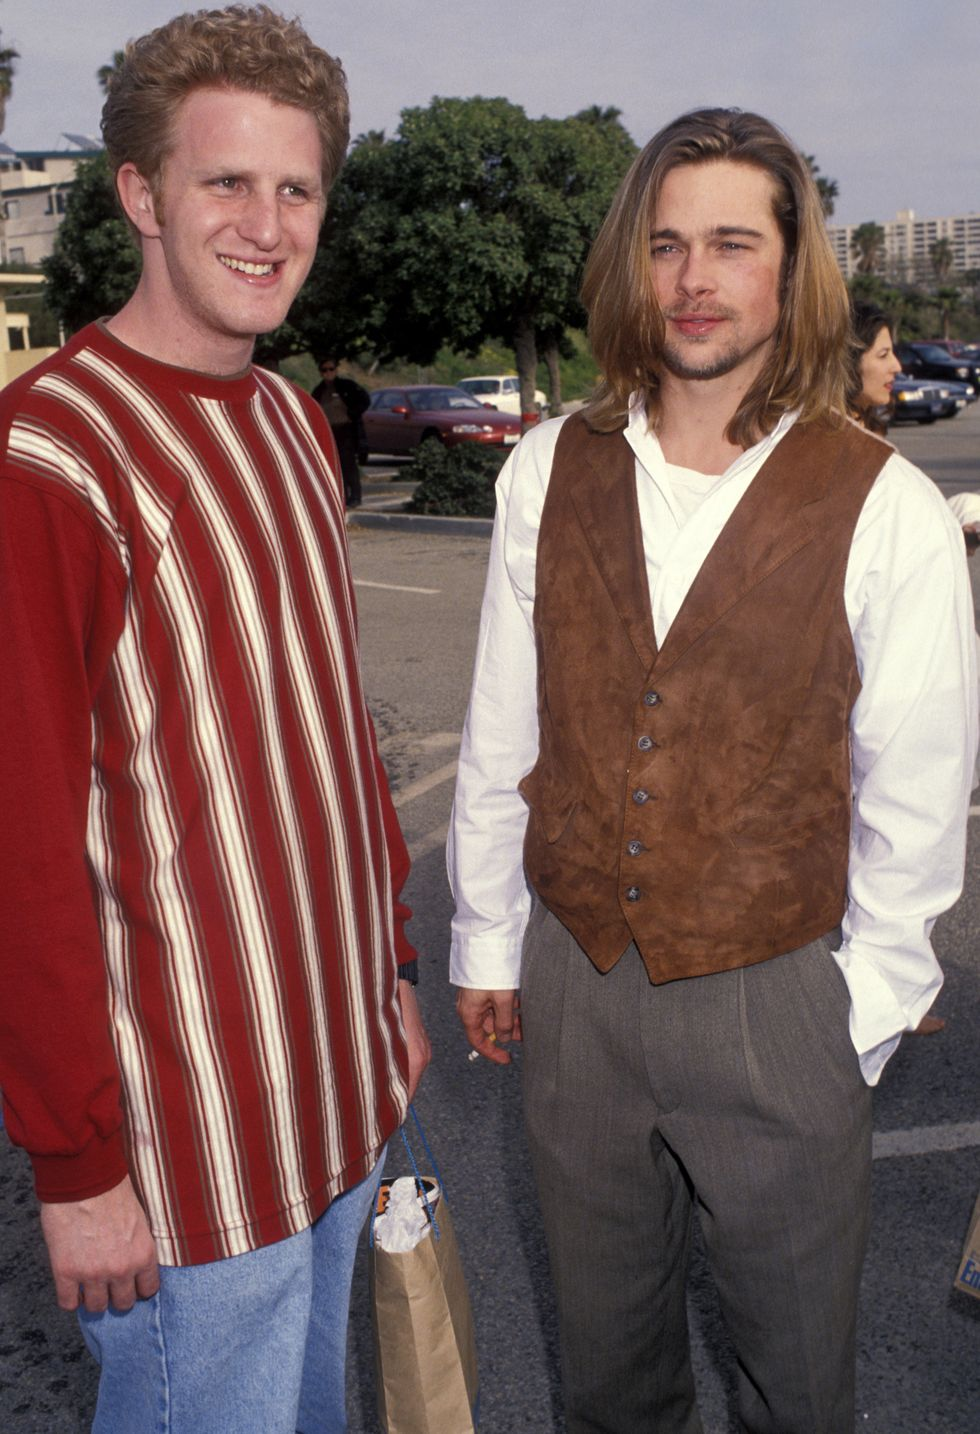 1993: And Another Hit Michael Rapaport poses with Pitt at the Independent Spirit Awards. The comedian and Pitt were part of the ensemble cast for Quentin Tarantino and Tony Scott's 1993 hit True Romance .